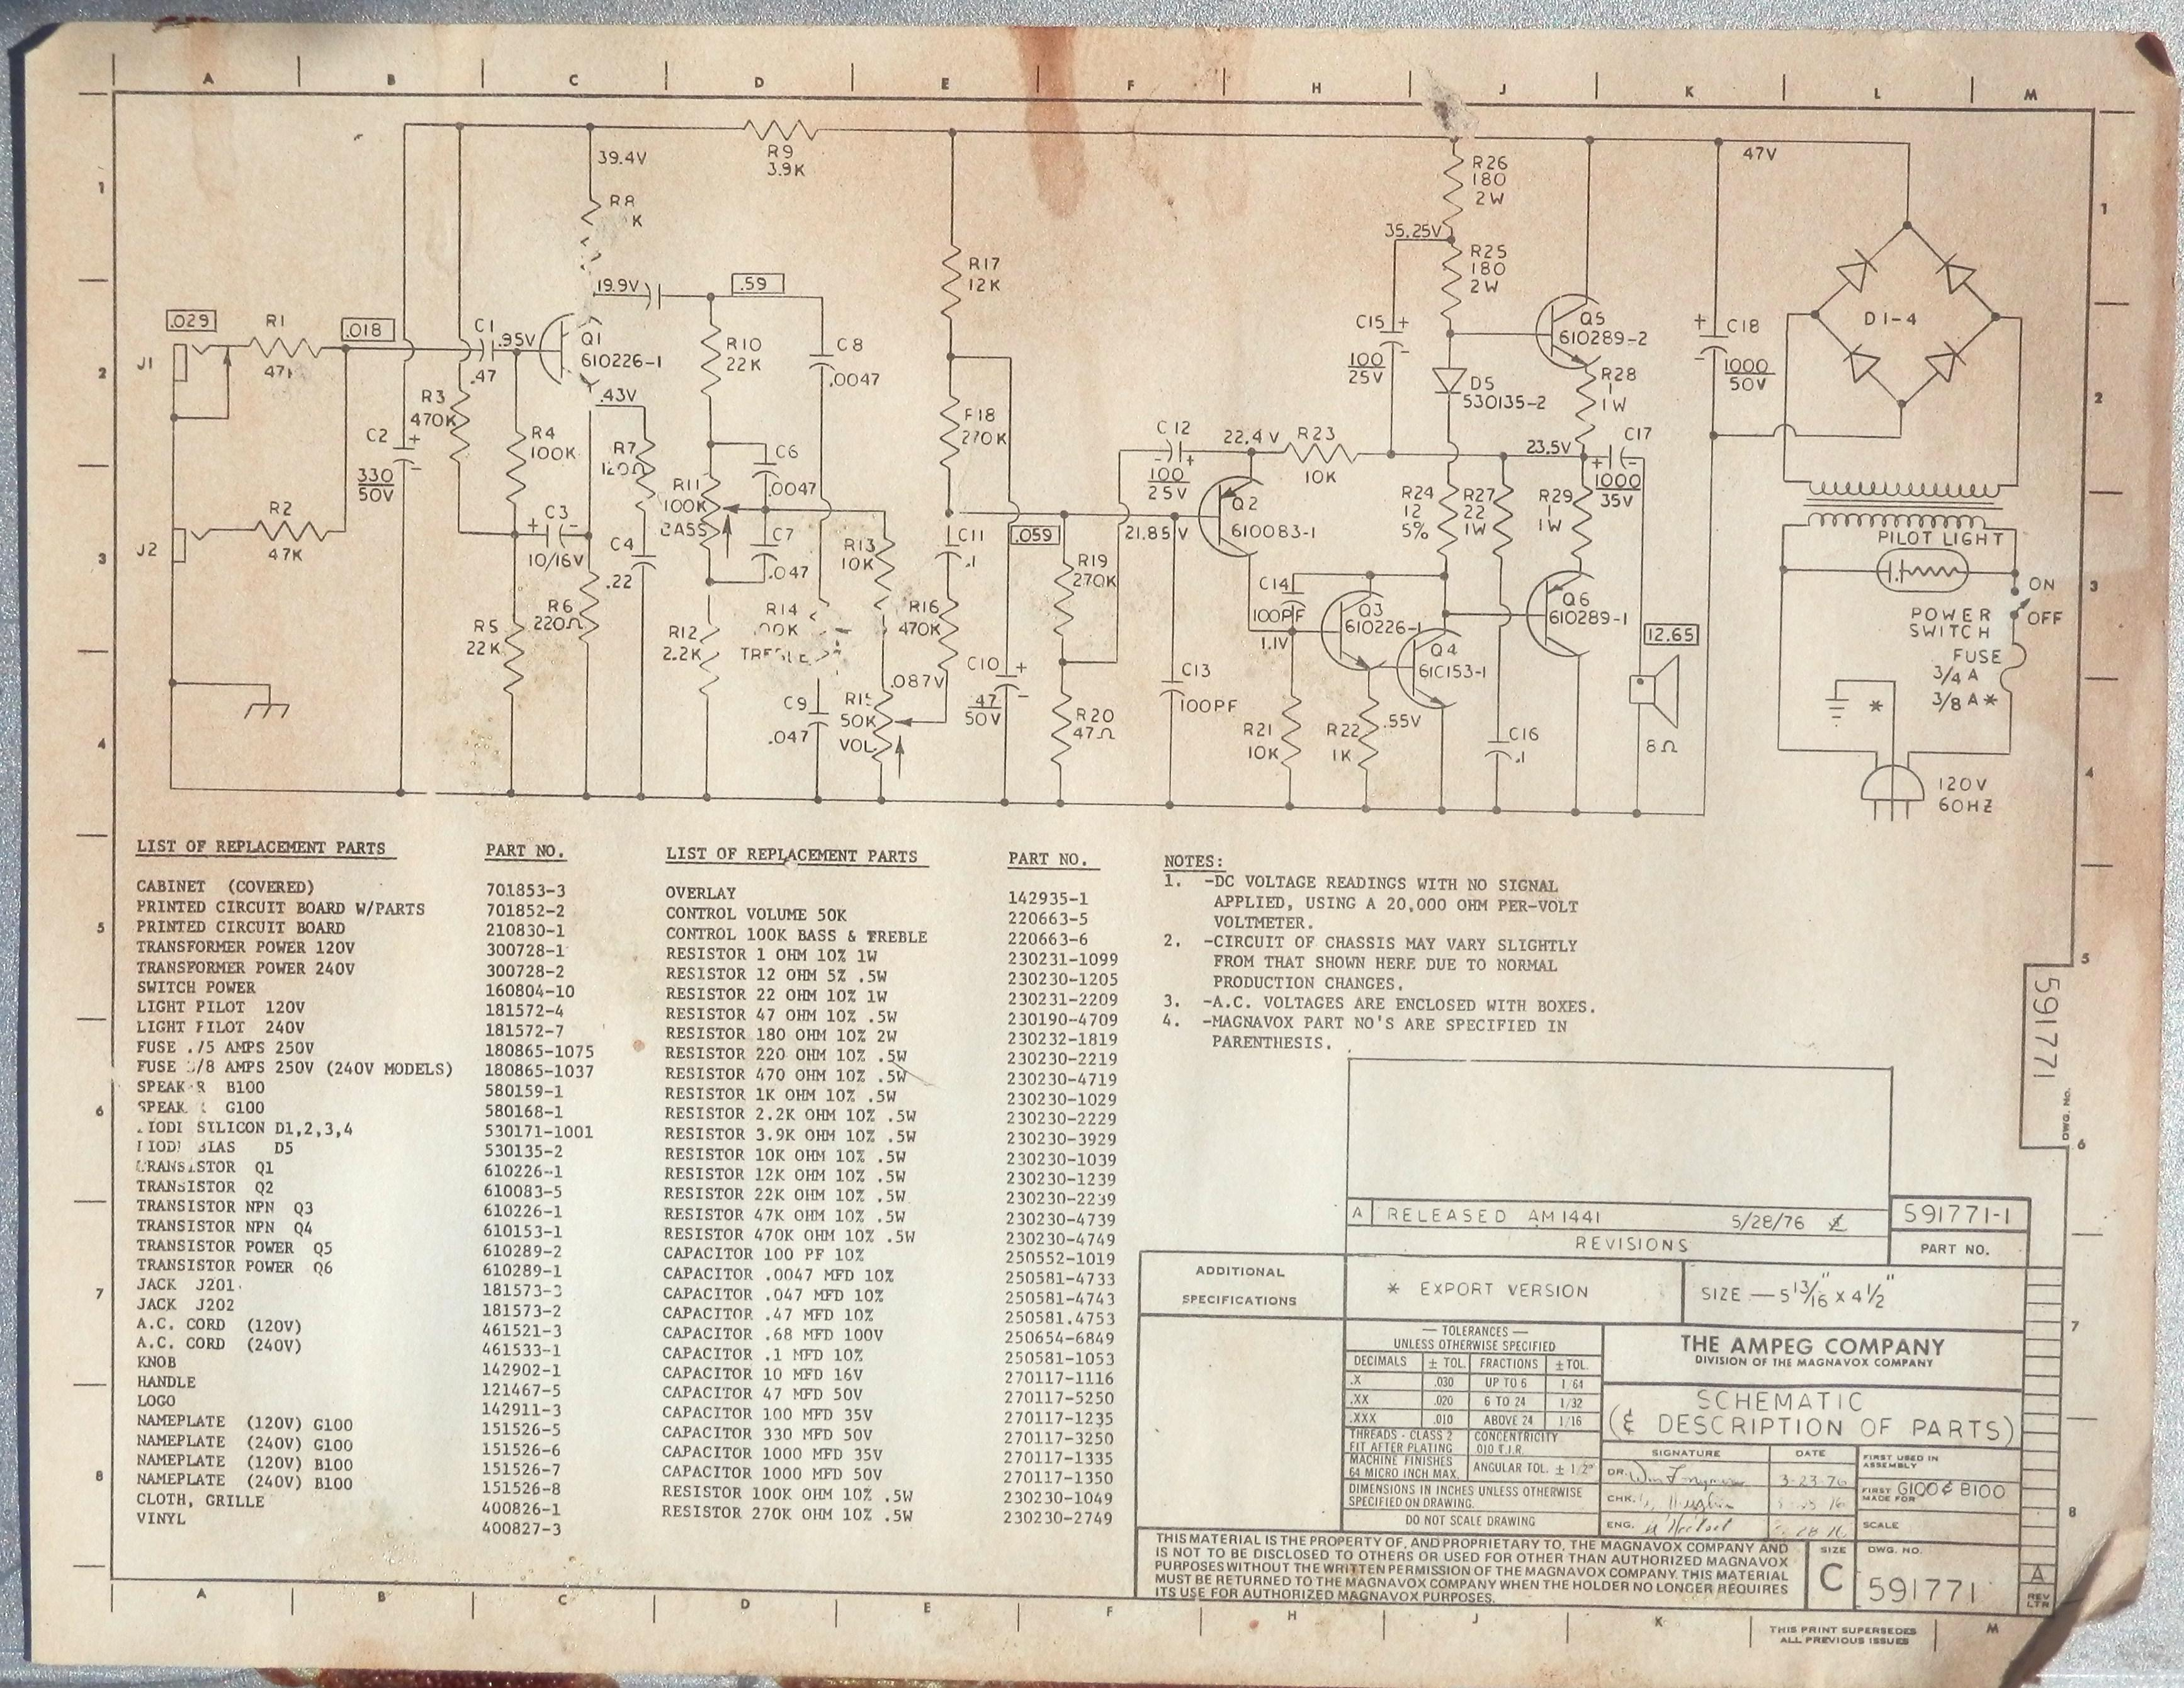 Are Vintage ampeg schematics final, sorry